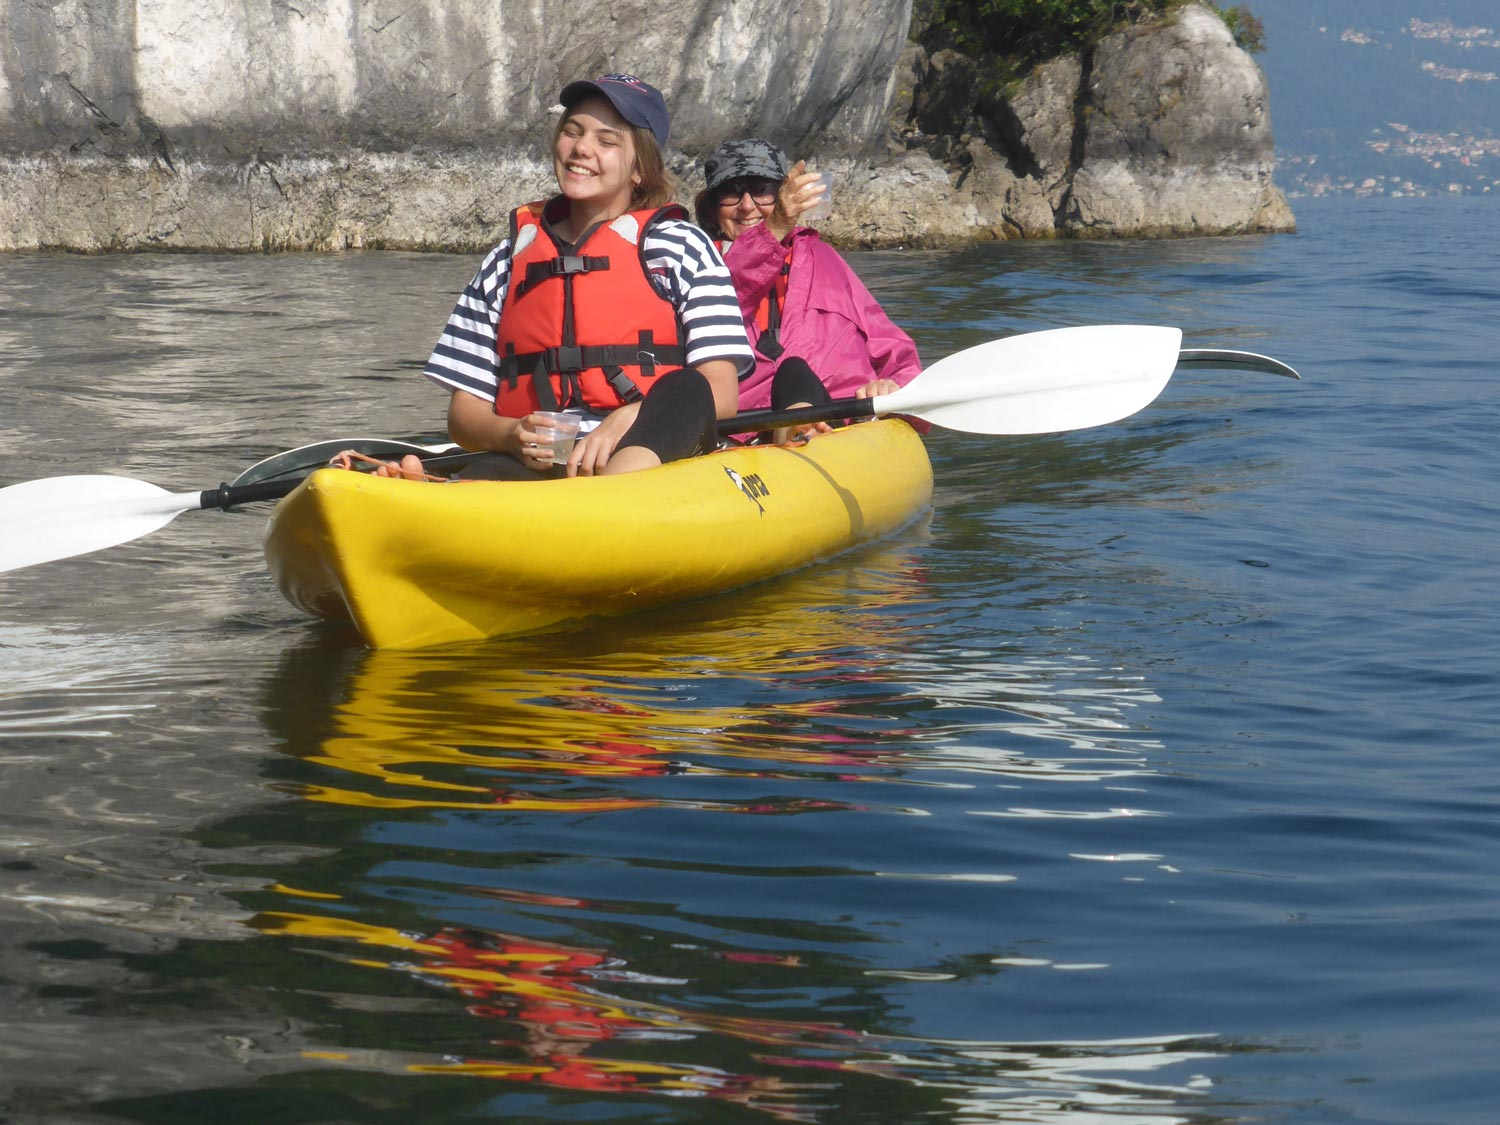 Kayaking adventure on Lake Como